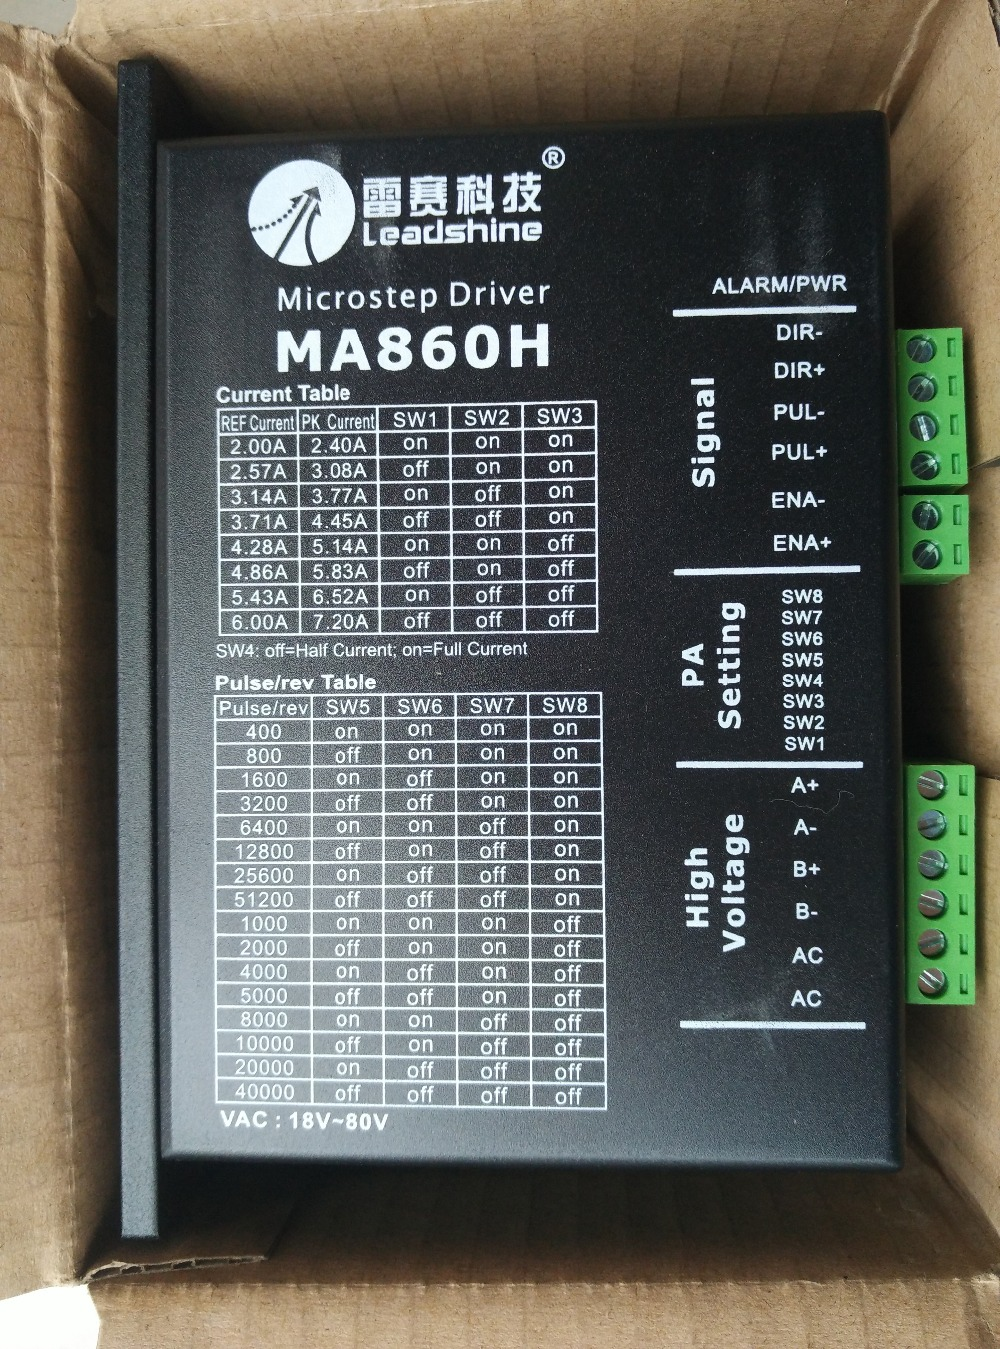 2 phase 7.2A AC18-80V MA860H Leadshine 256 Microstep driver  fit 57 86 110 motor 5pcs lot 2 phase 7 2a ac18 80v ma860h leadshine 256 microstep driver fit 57 86 110 motor